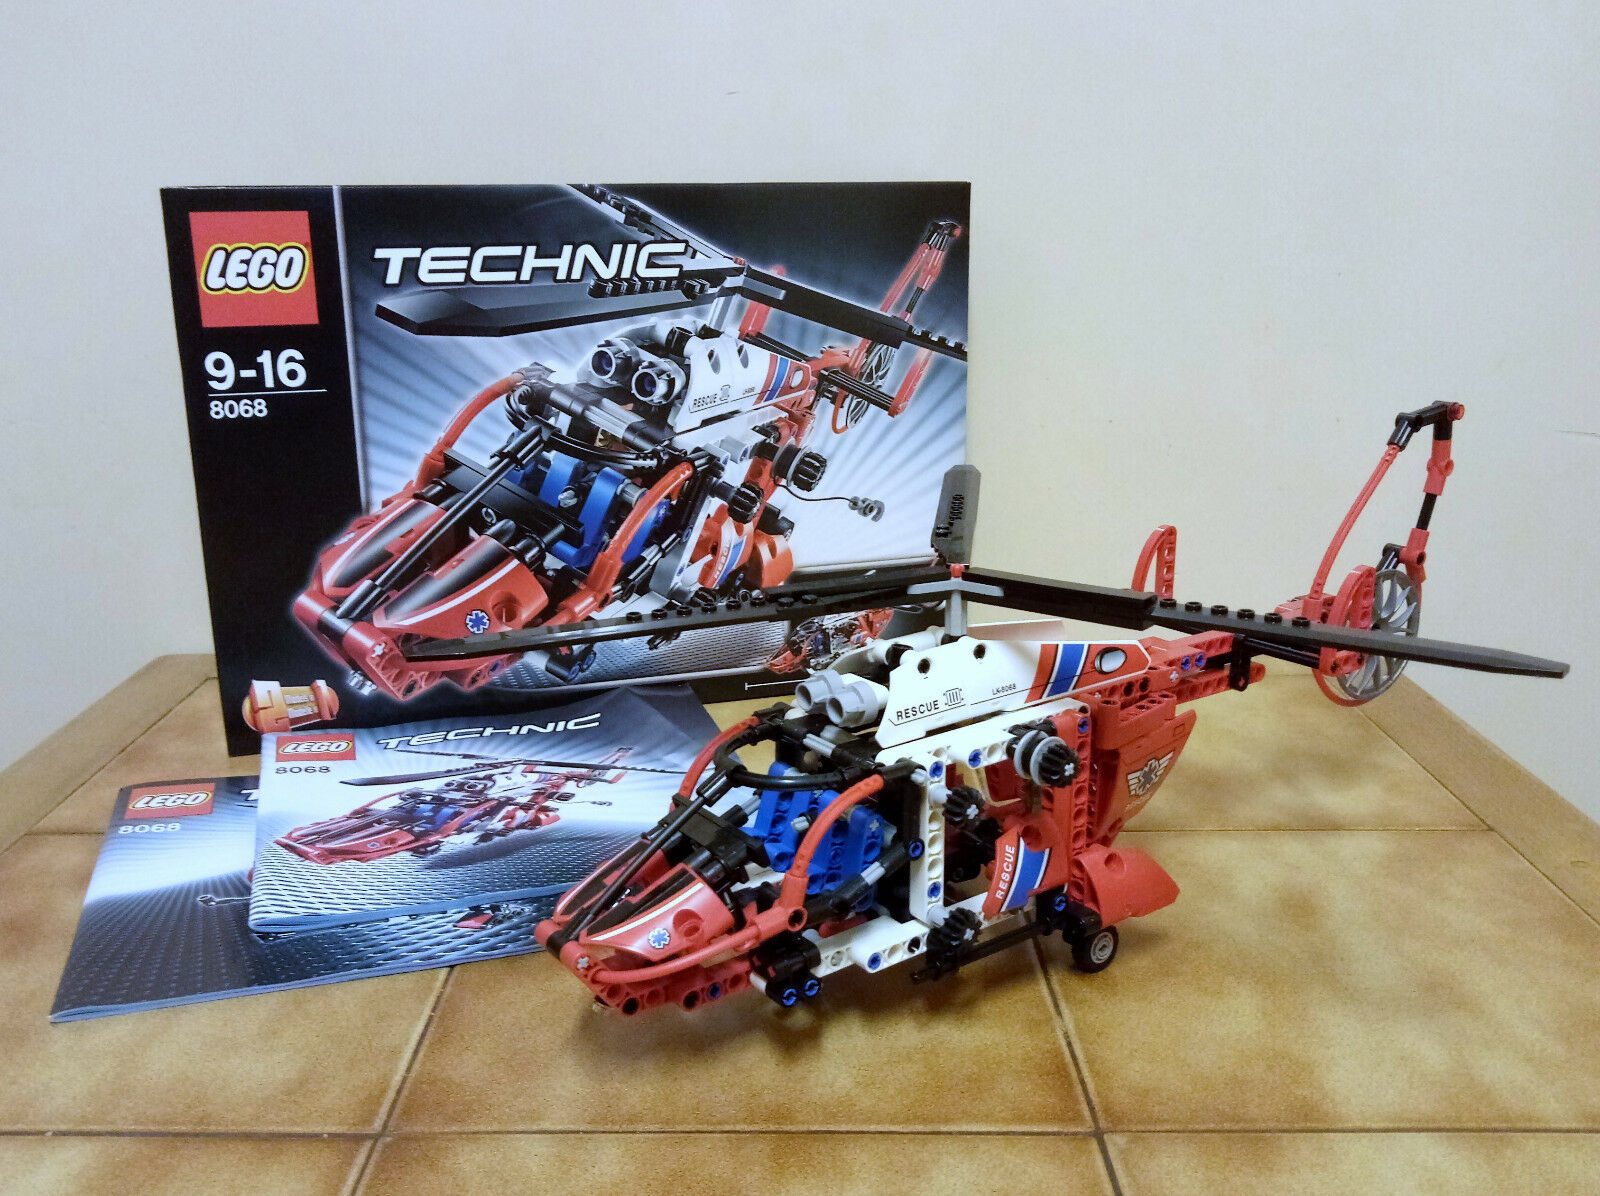 LEGO TECHNIC 8068 HÉLICOPTÈRE COMPLET AVEC BOITE BOITE BOITE (with box boxed) & INSTRUCTIONS 9afeb2